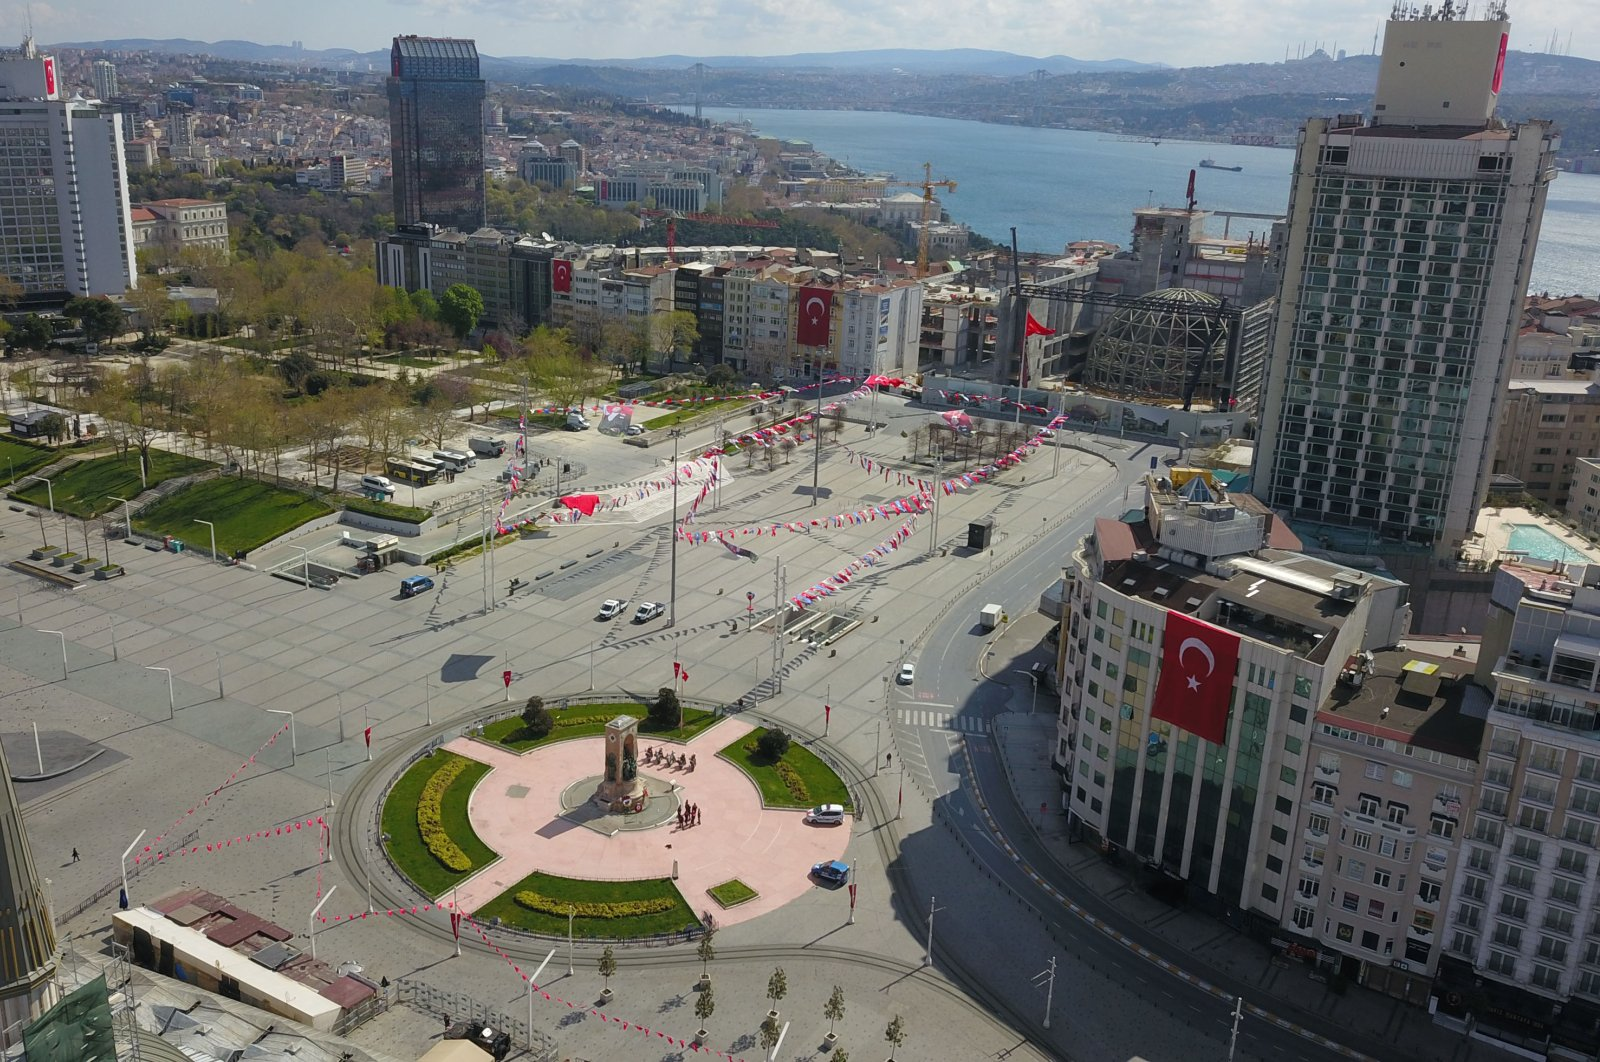 Istanbul's famous Taksim square with decorations to celebrate the National Sovereignty and Children's Day, April 23, 2020. (DHA Photo)